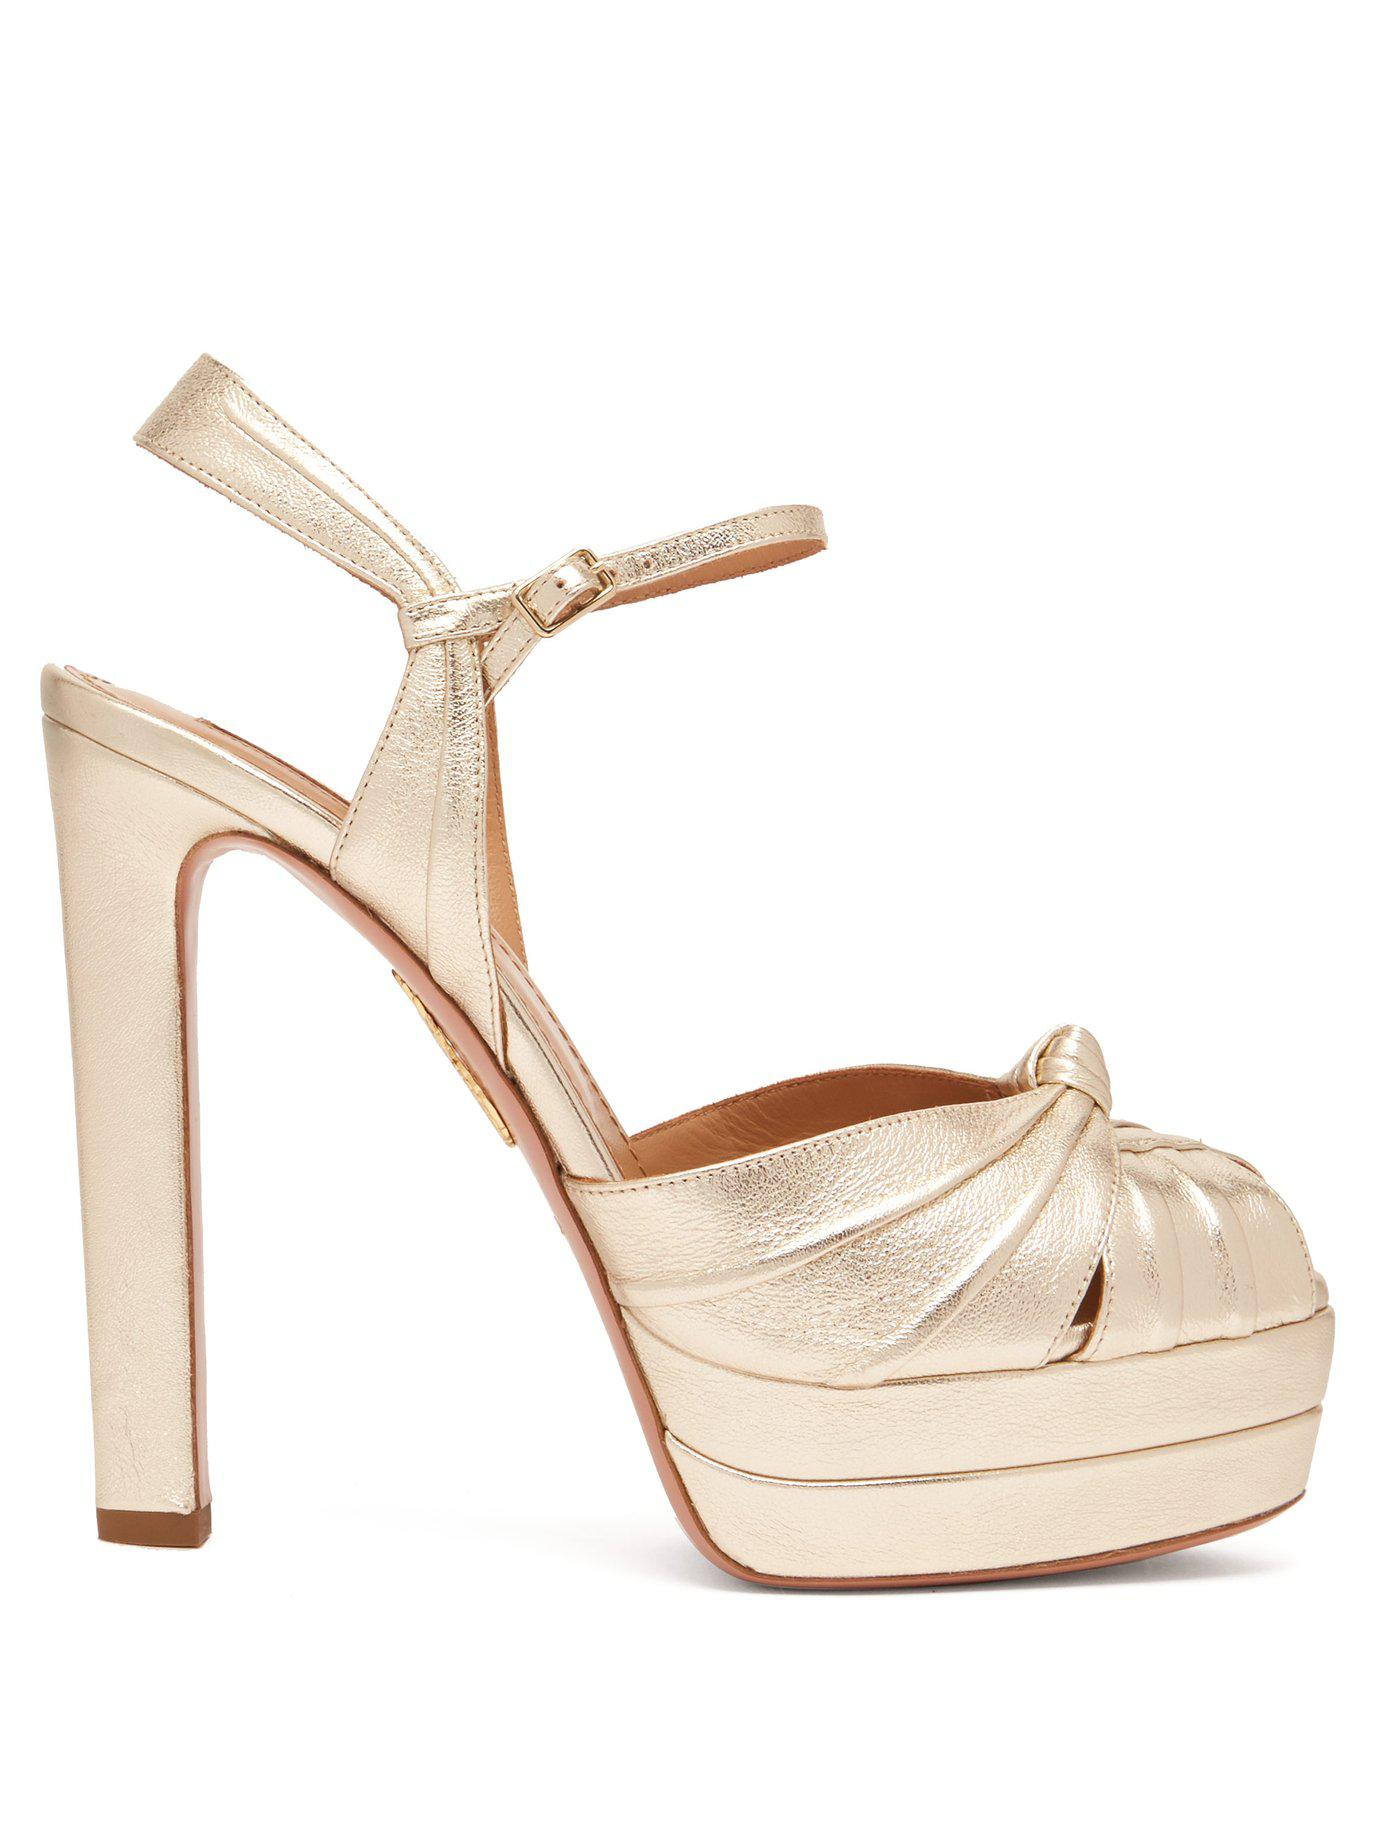 7333d30bfd1 Lyst - Aquazzura Evita 130 Metallic Platform Sandals in Metallic